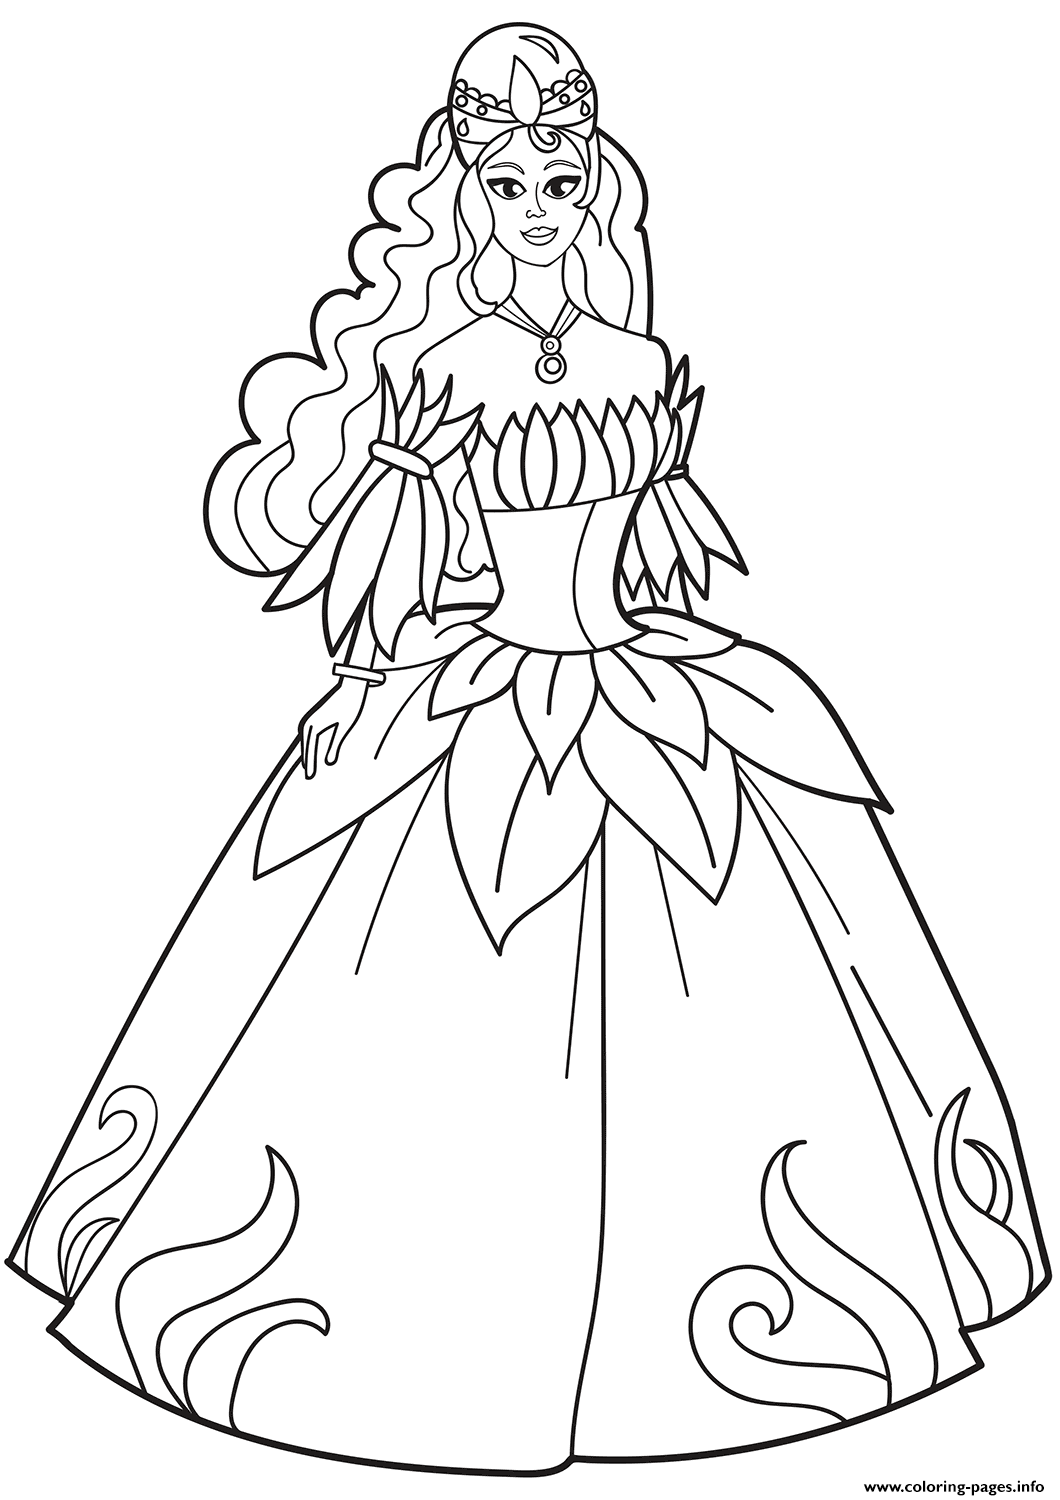 Princess In Flower Dress Coloring Pages Printable